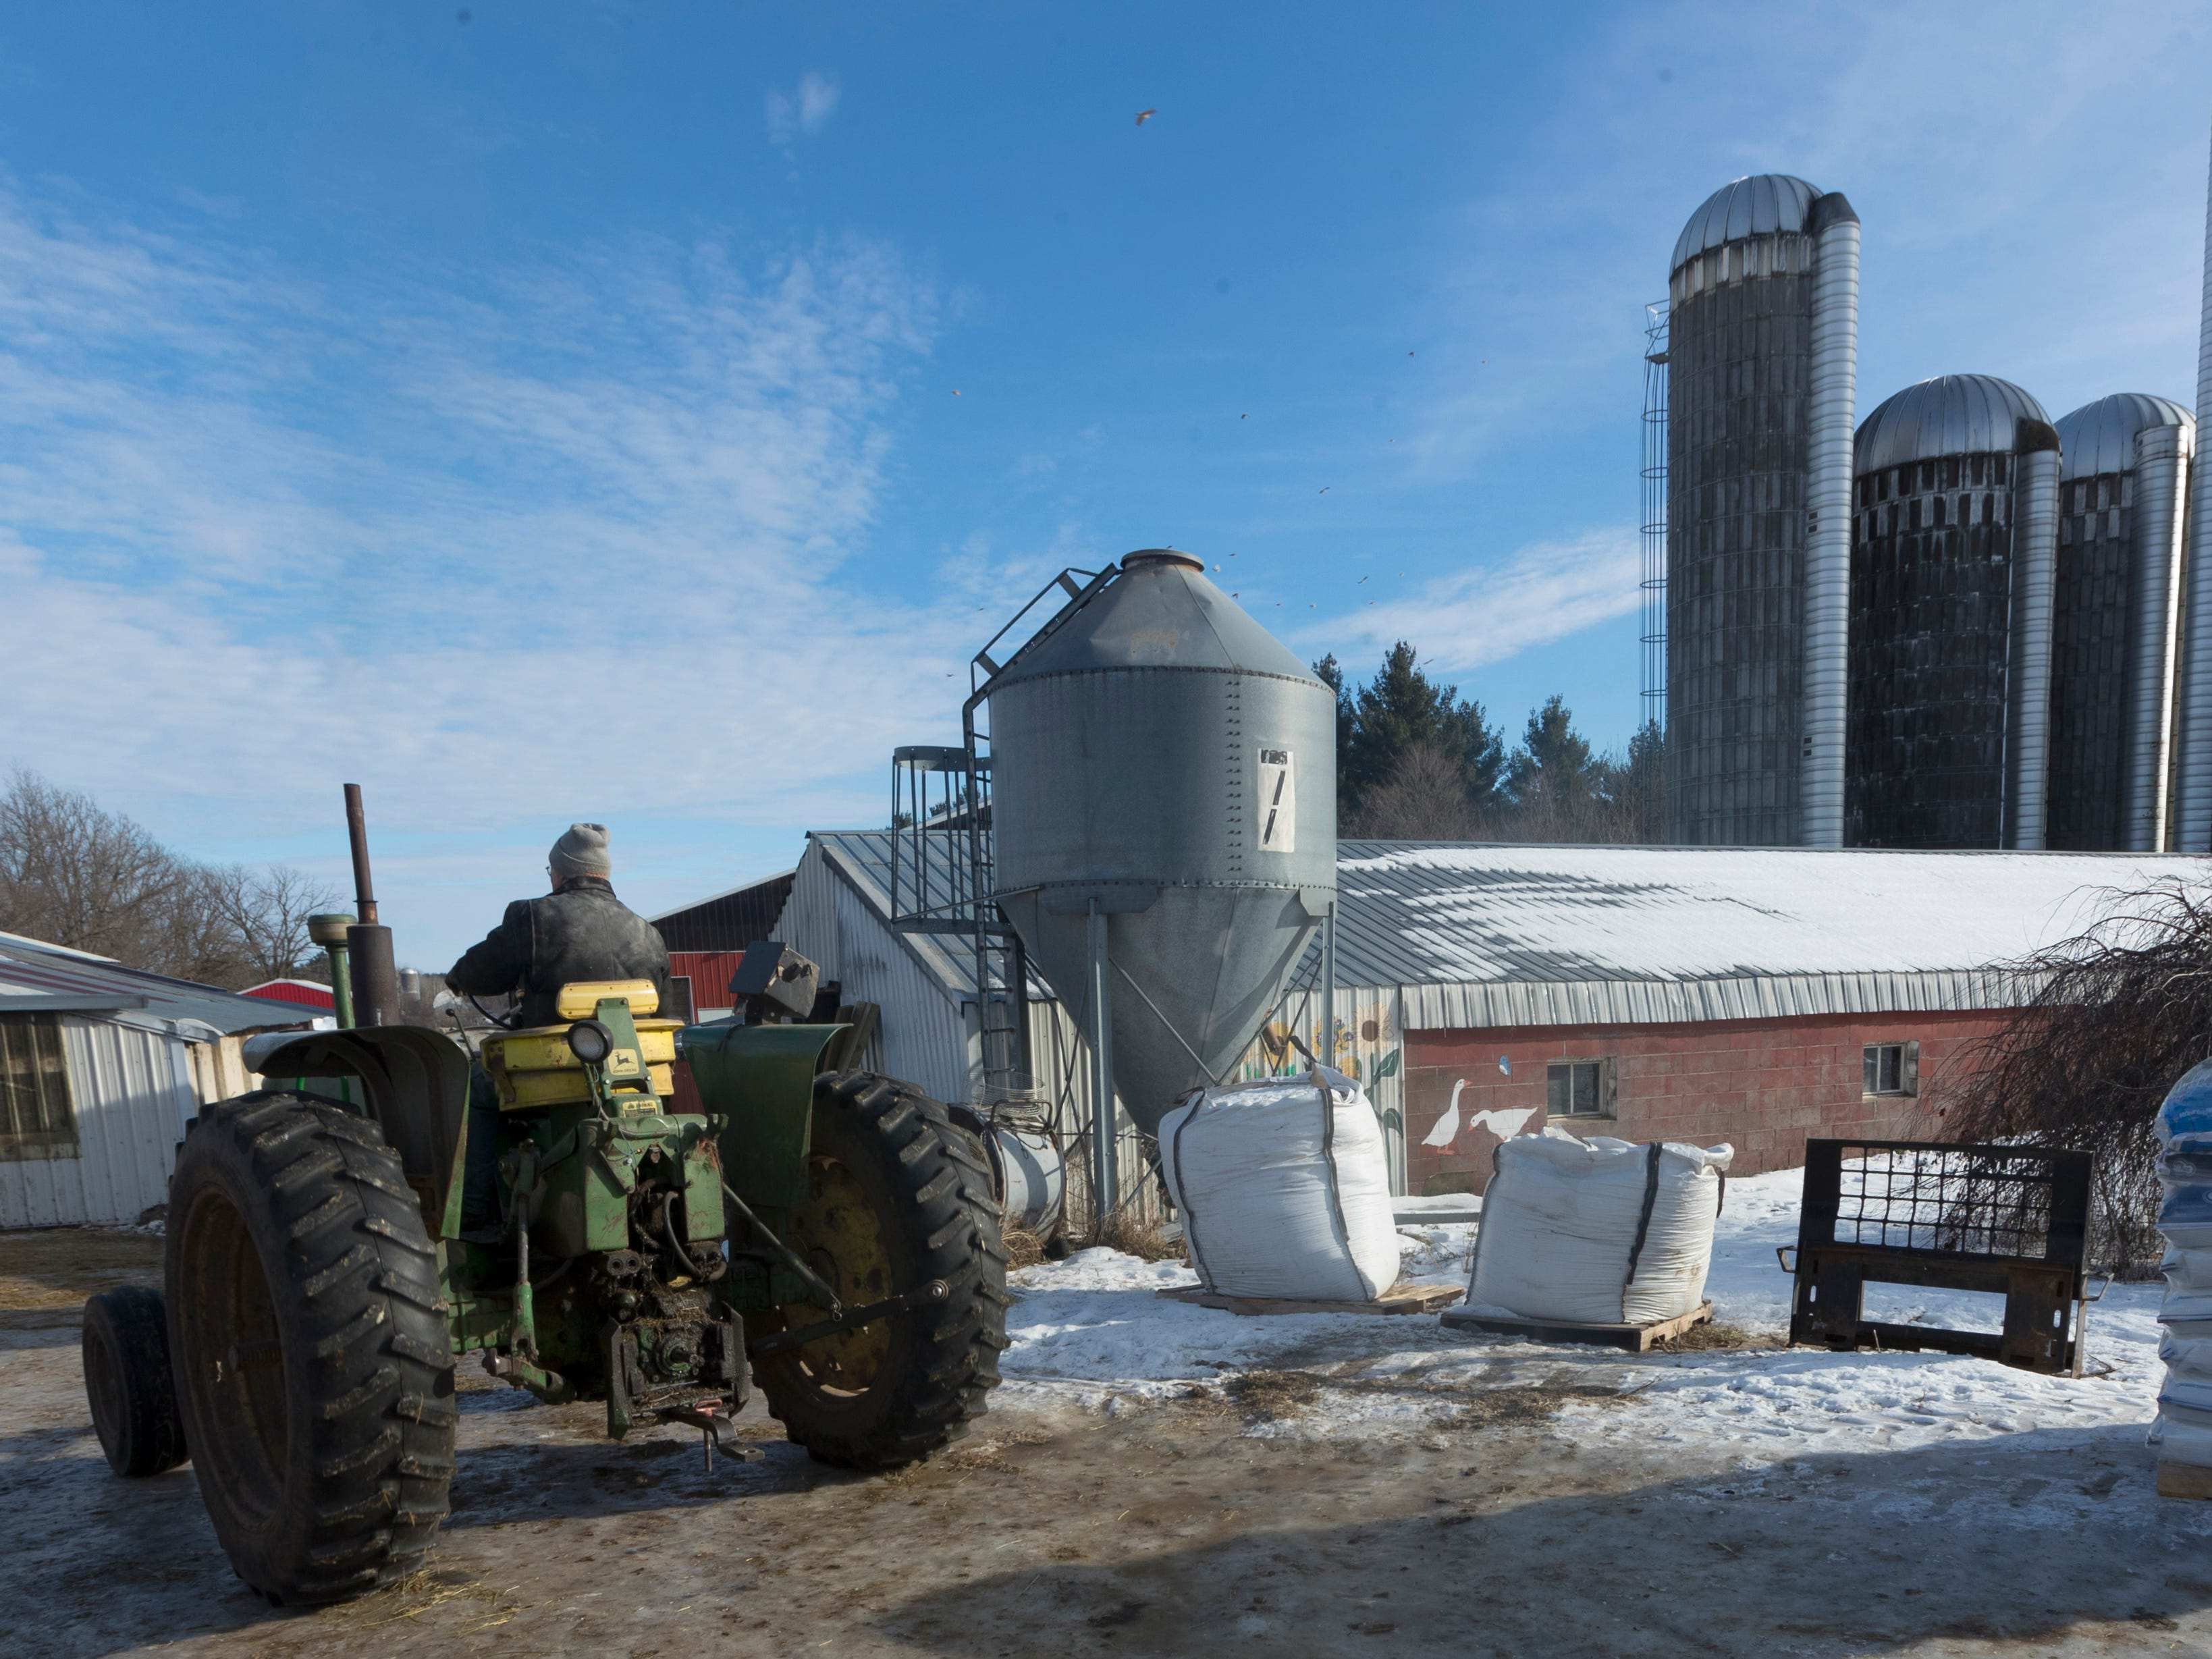 Chuck Spaulding moves his 1964 John Deere tractor into a shed while doing chores.